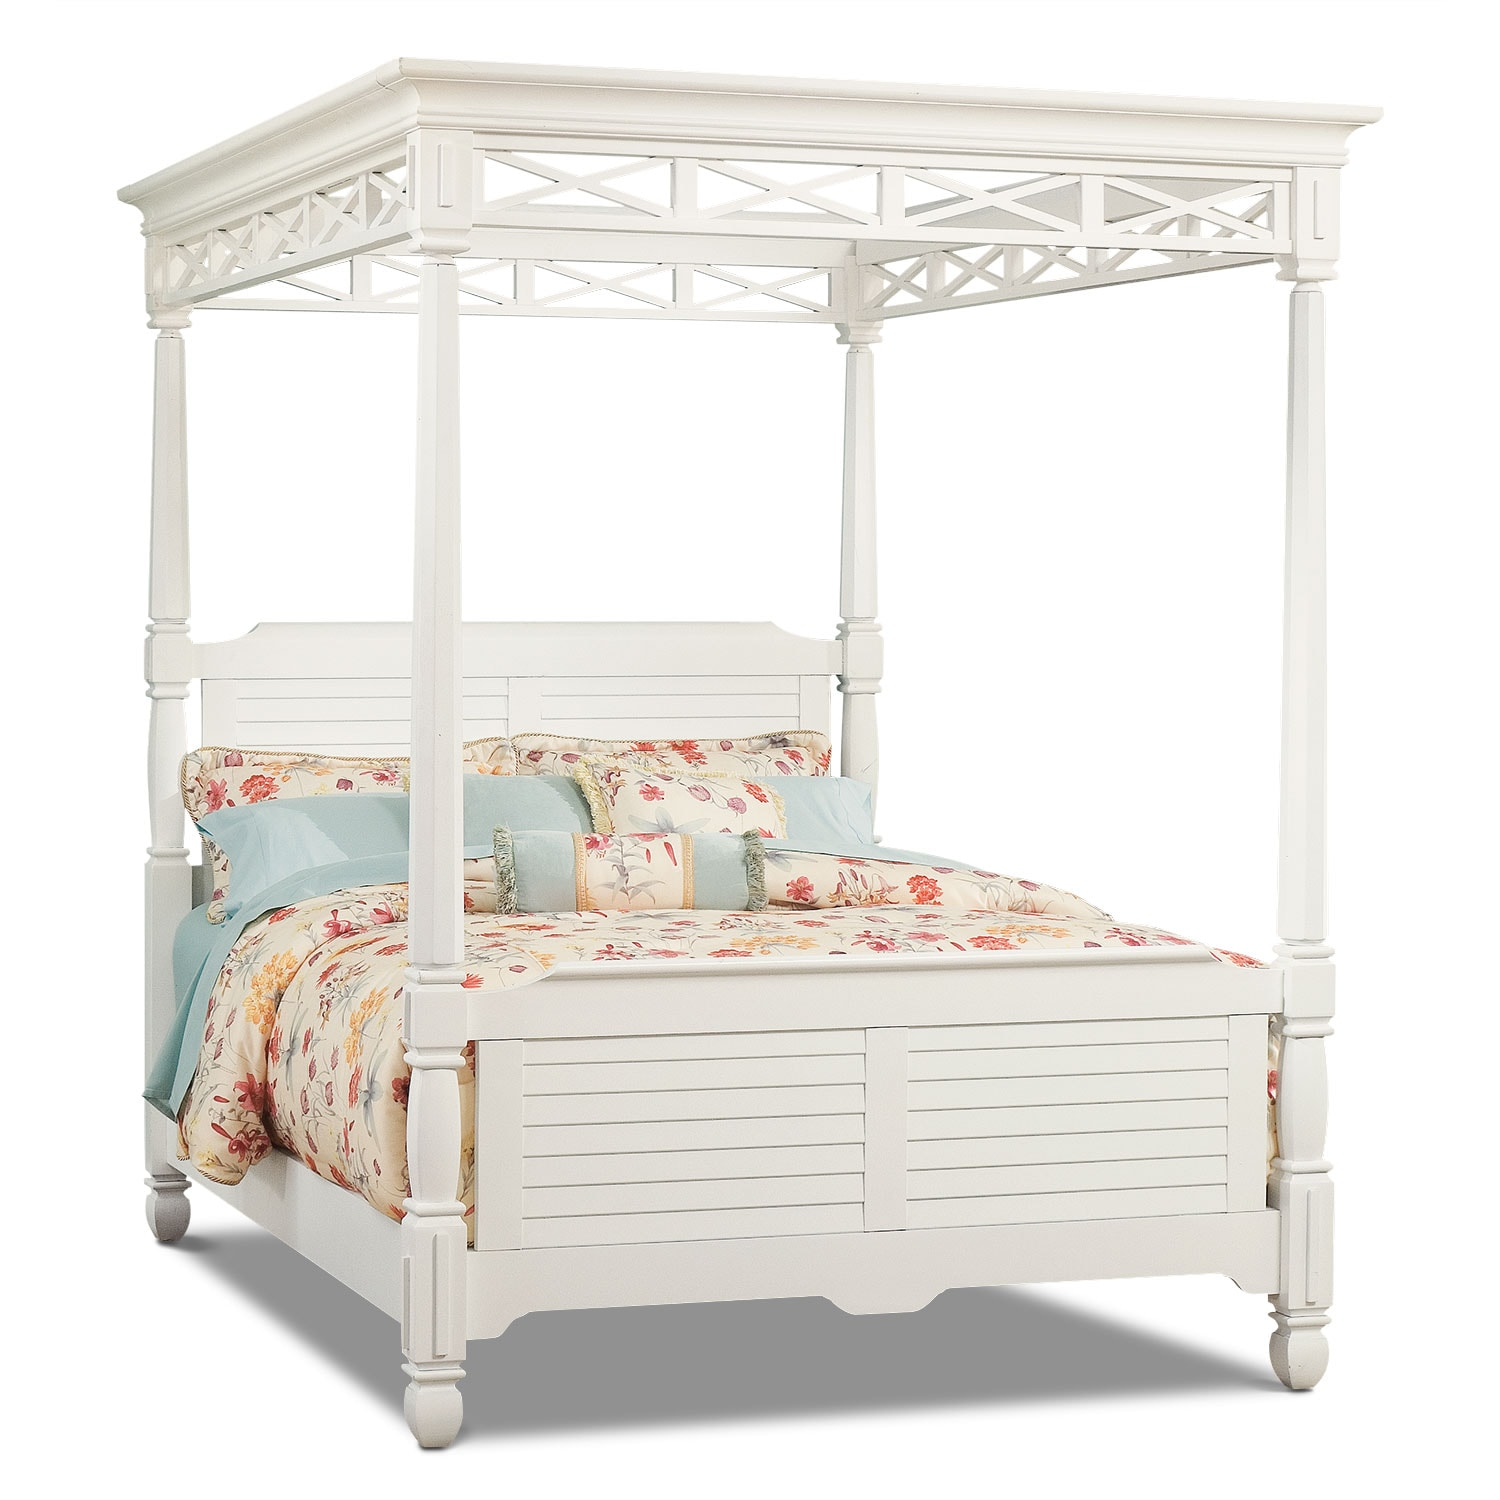 Plantation Cove White Canopy King Bed